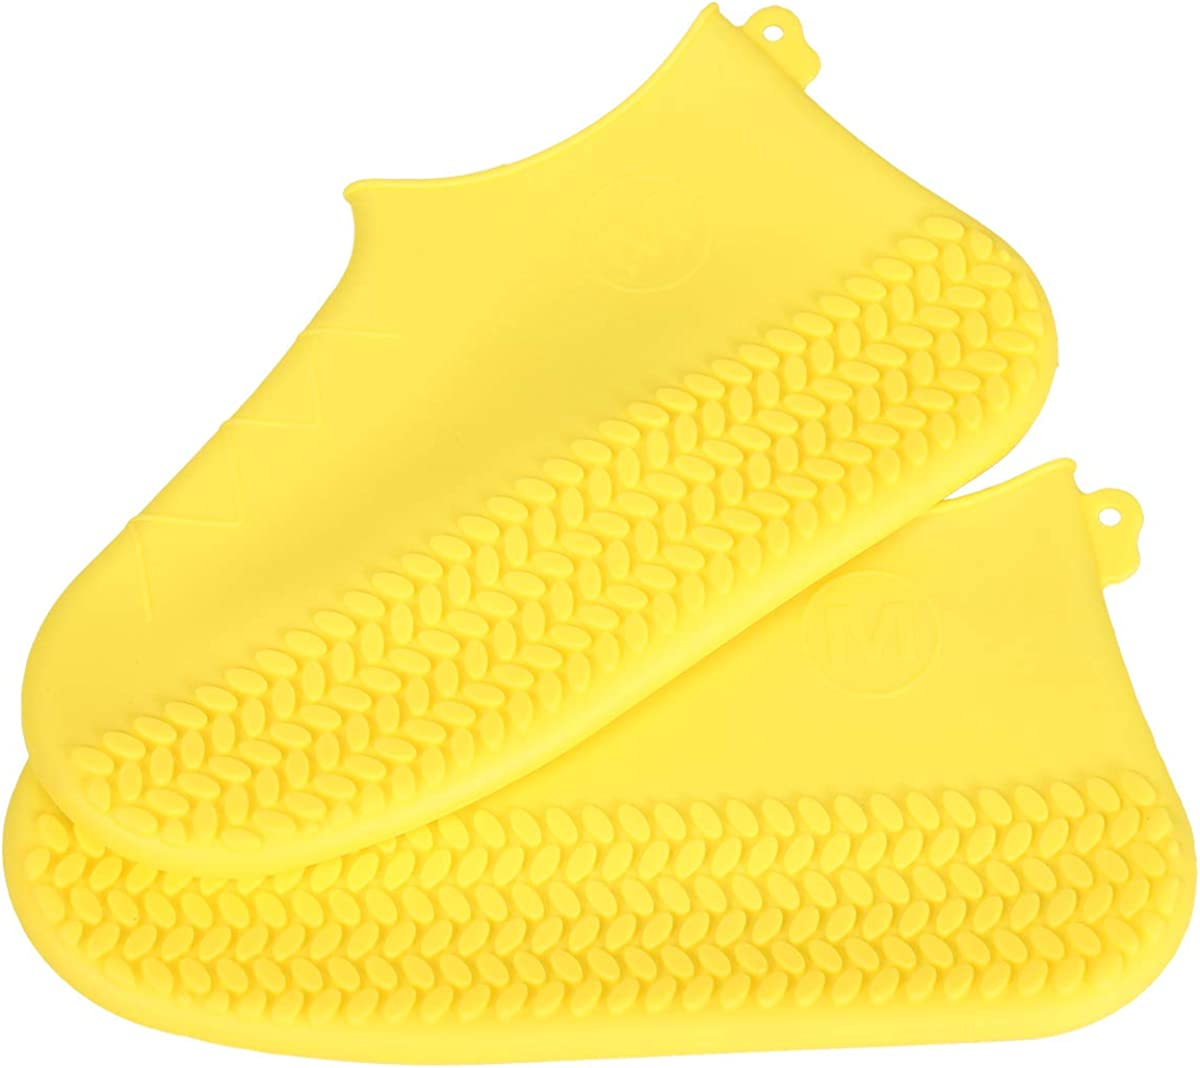 BENPIN Silicone Shoe Covers 1 Pair Outdoor Camping Cycling Waterproof Reusable Foldable Convenient Rain Boots Non Slip Design for Kids Women Men for Rain